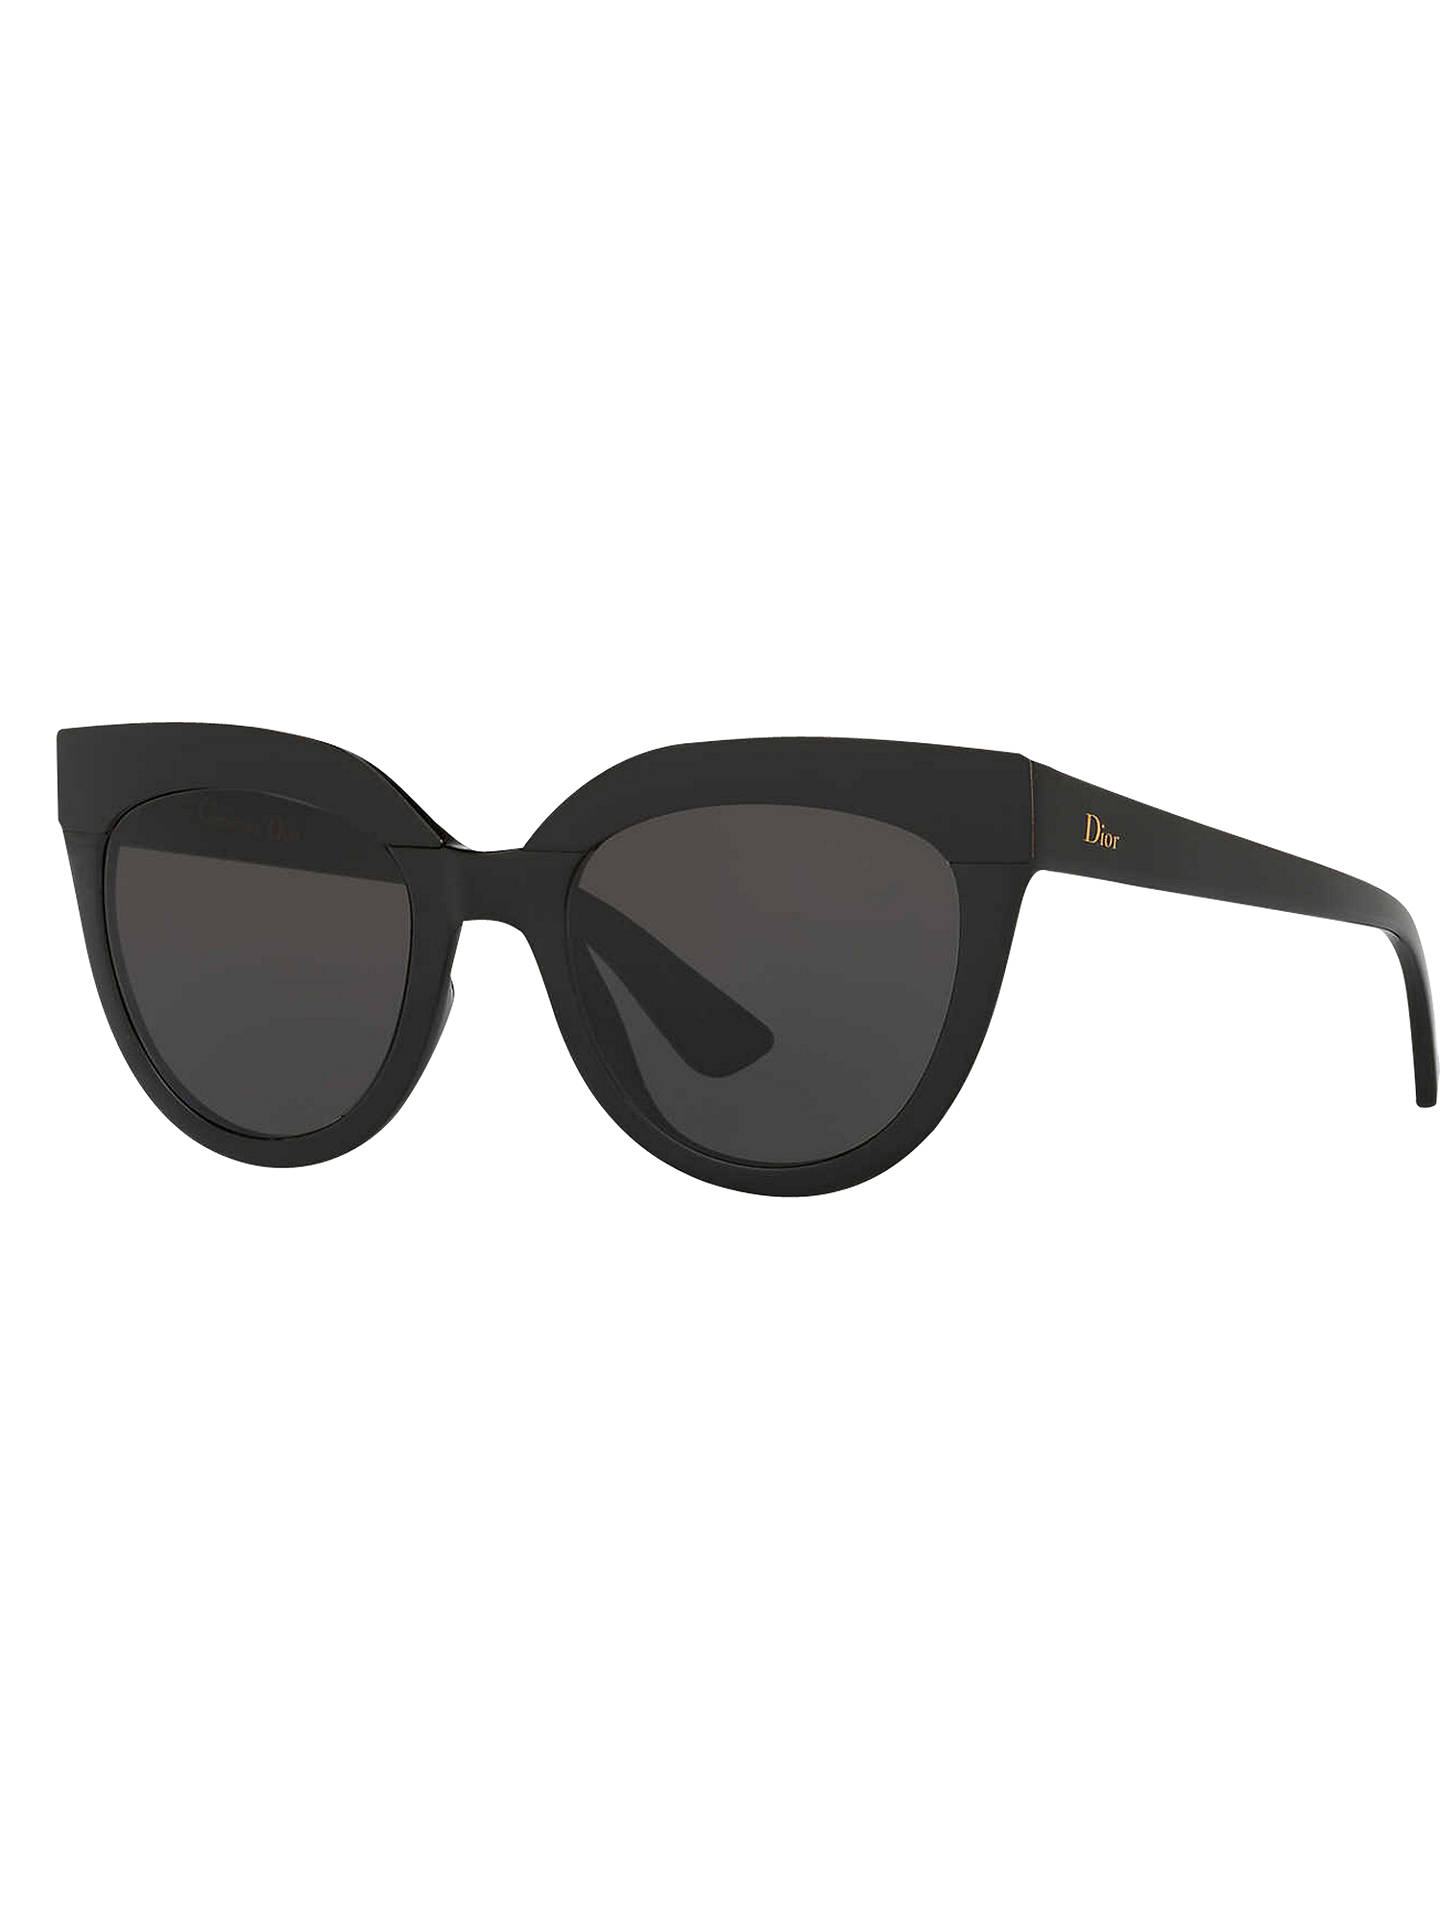 0e69db5163300 Buy Dior DiorSoft1 Cat s Eye Sunglasses